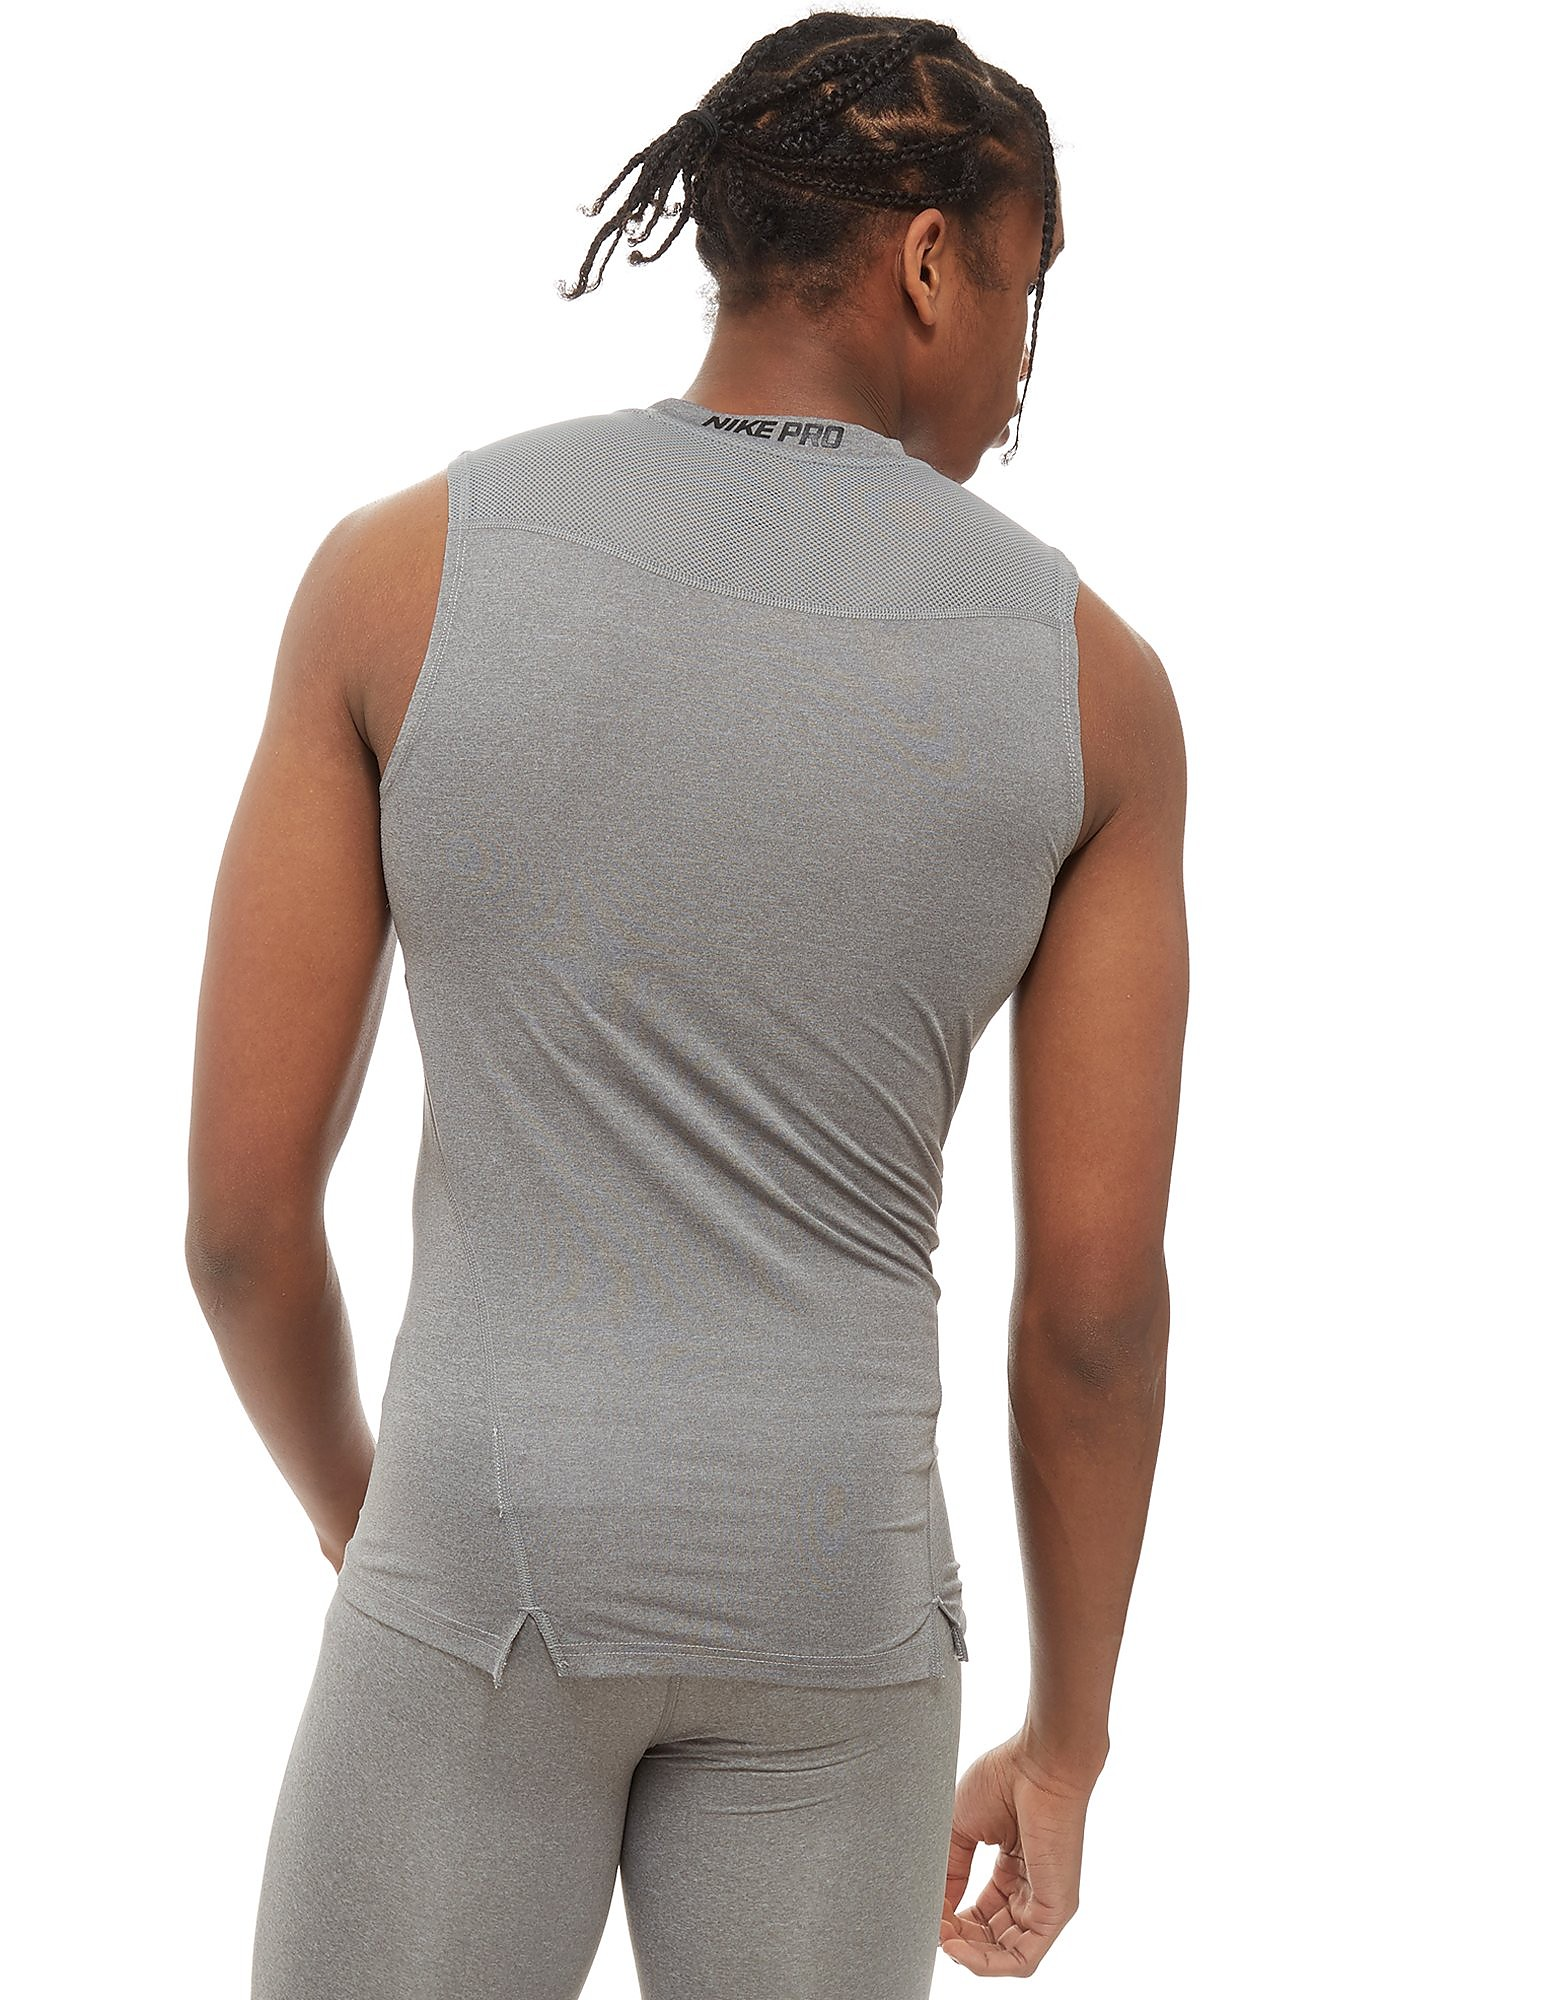 Nike Pro Compression Tank Top